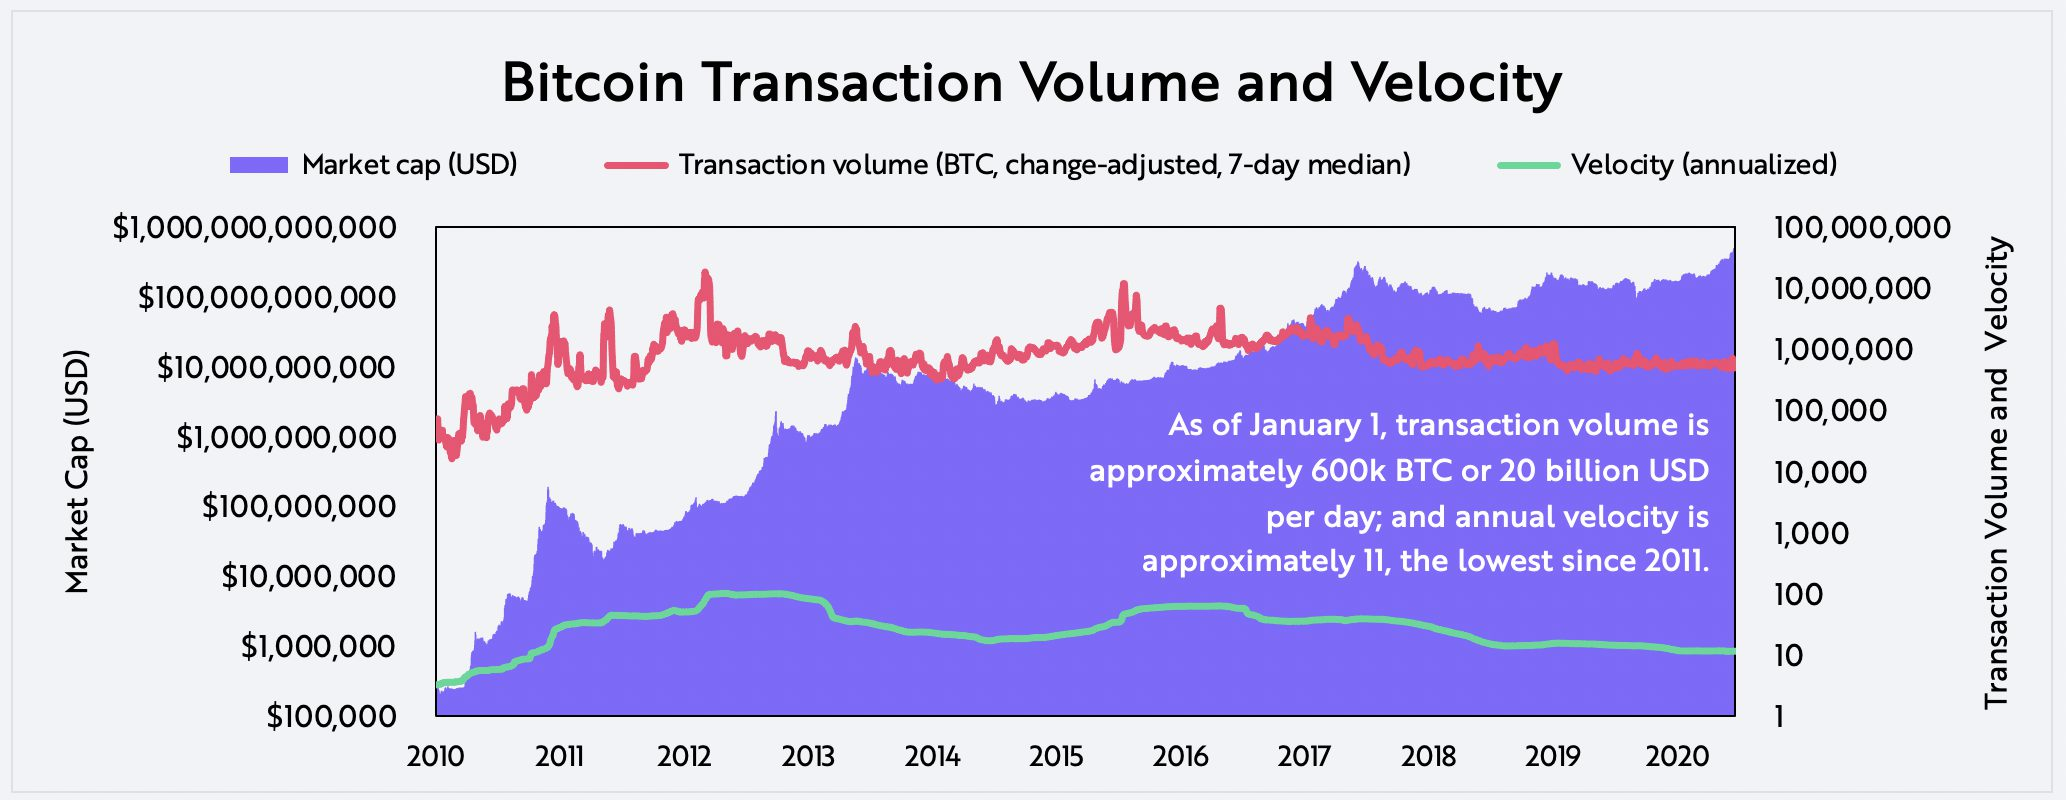 Evaluating Bitcoin Transaction Volume and Velocity on-chain data